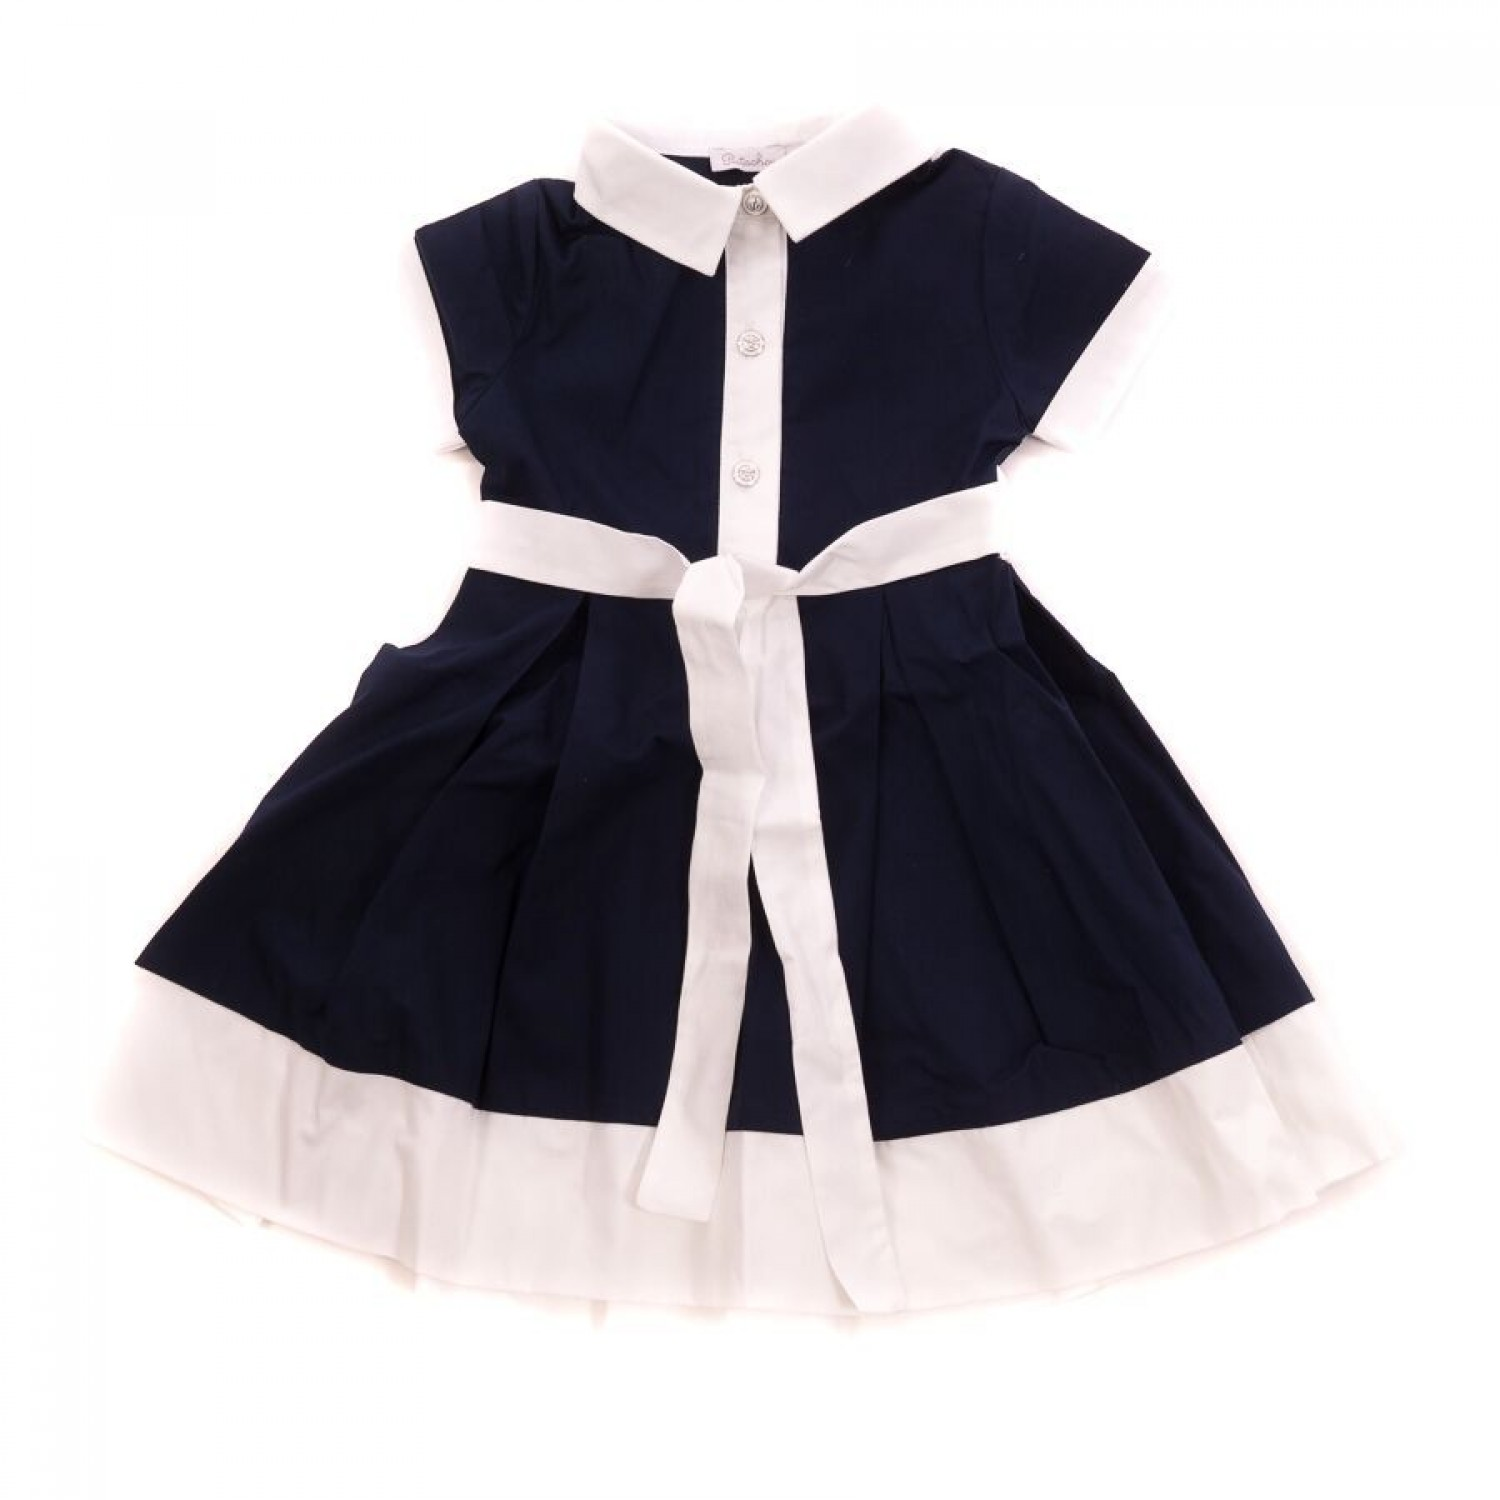 667c603f0d37 Patachou Navy and White Belted Dress